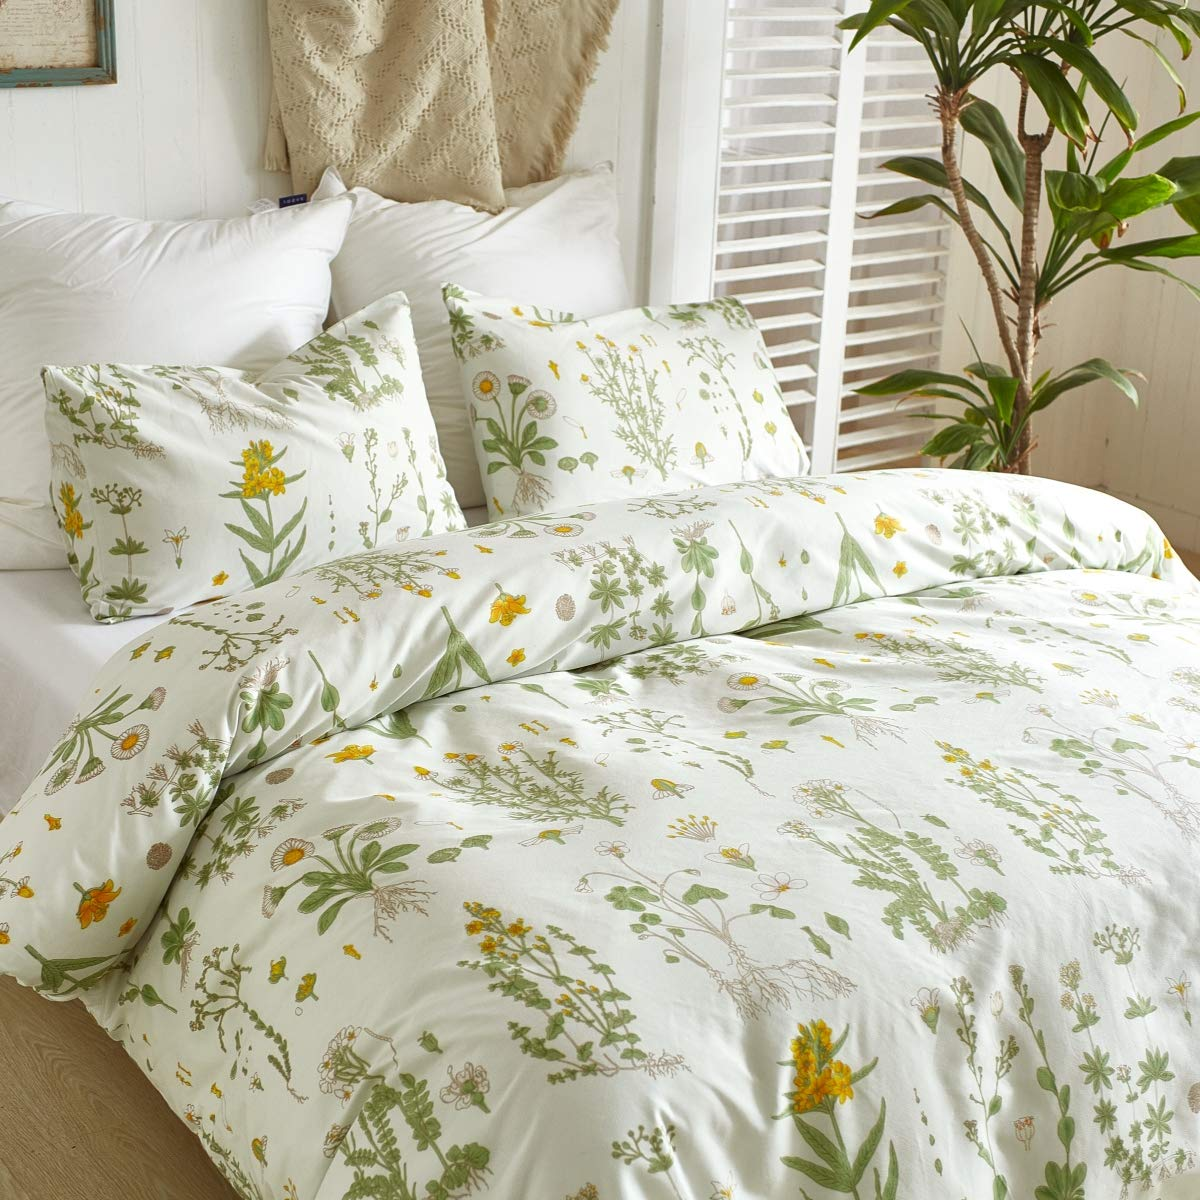 3 PCs Botanical Duvet Cover Set, Modern Flowers Printed Boho Comforter Cover Bedding Sets with Zipper Ties by Smoofy (Image #4)